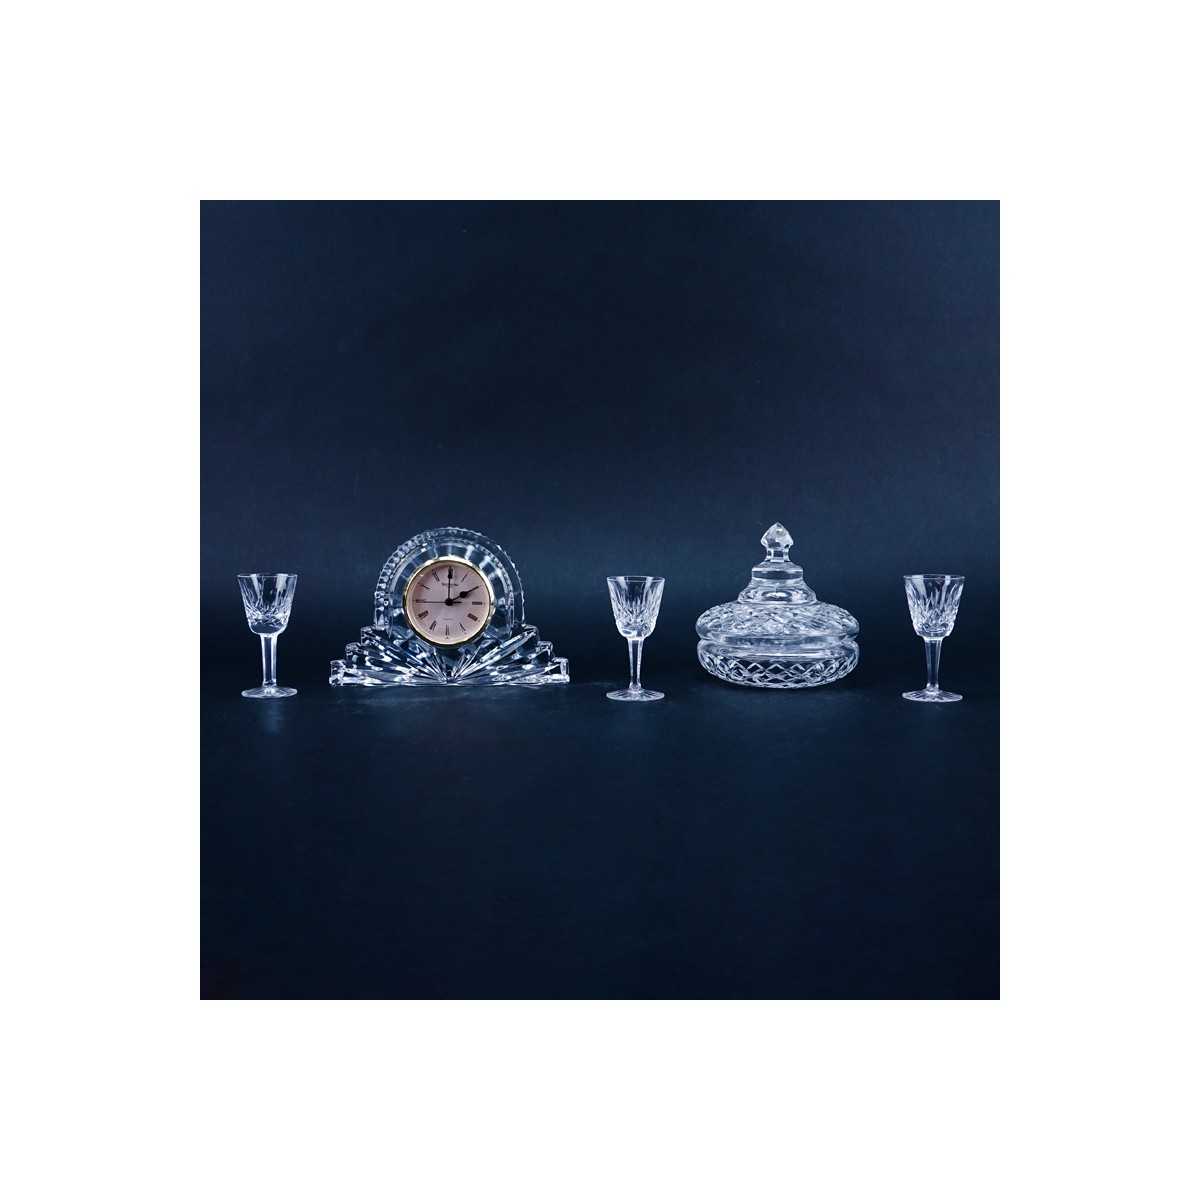 Collection of Five (5) Waterford Crystal Tableware. Includes: clock, covered dish, and three cordia